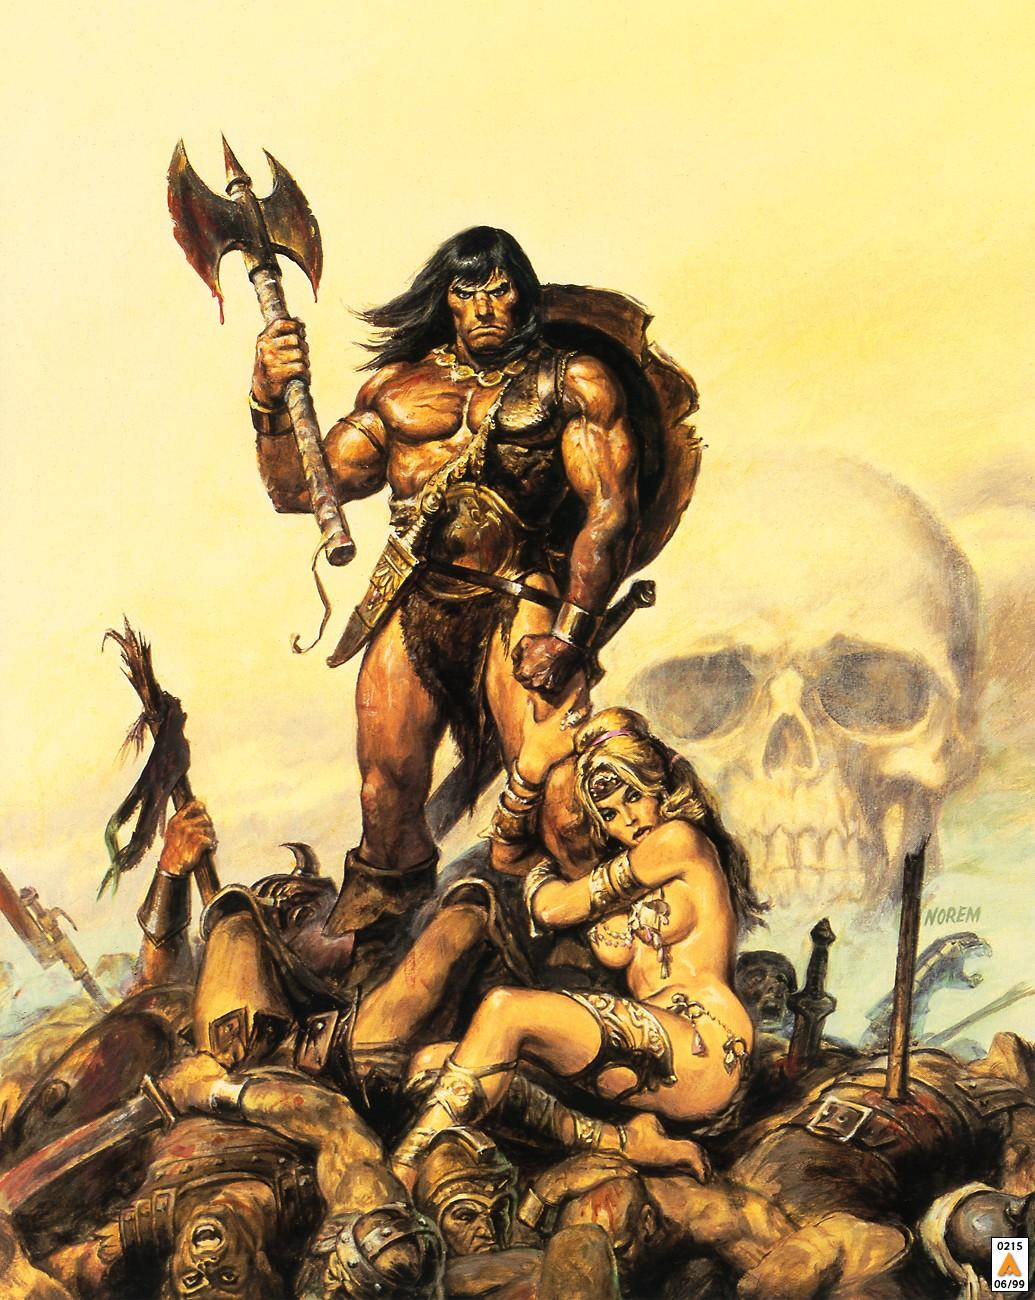 With conan the barbarian with women